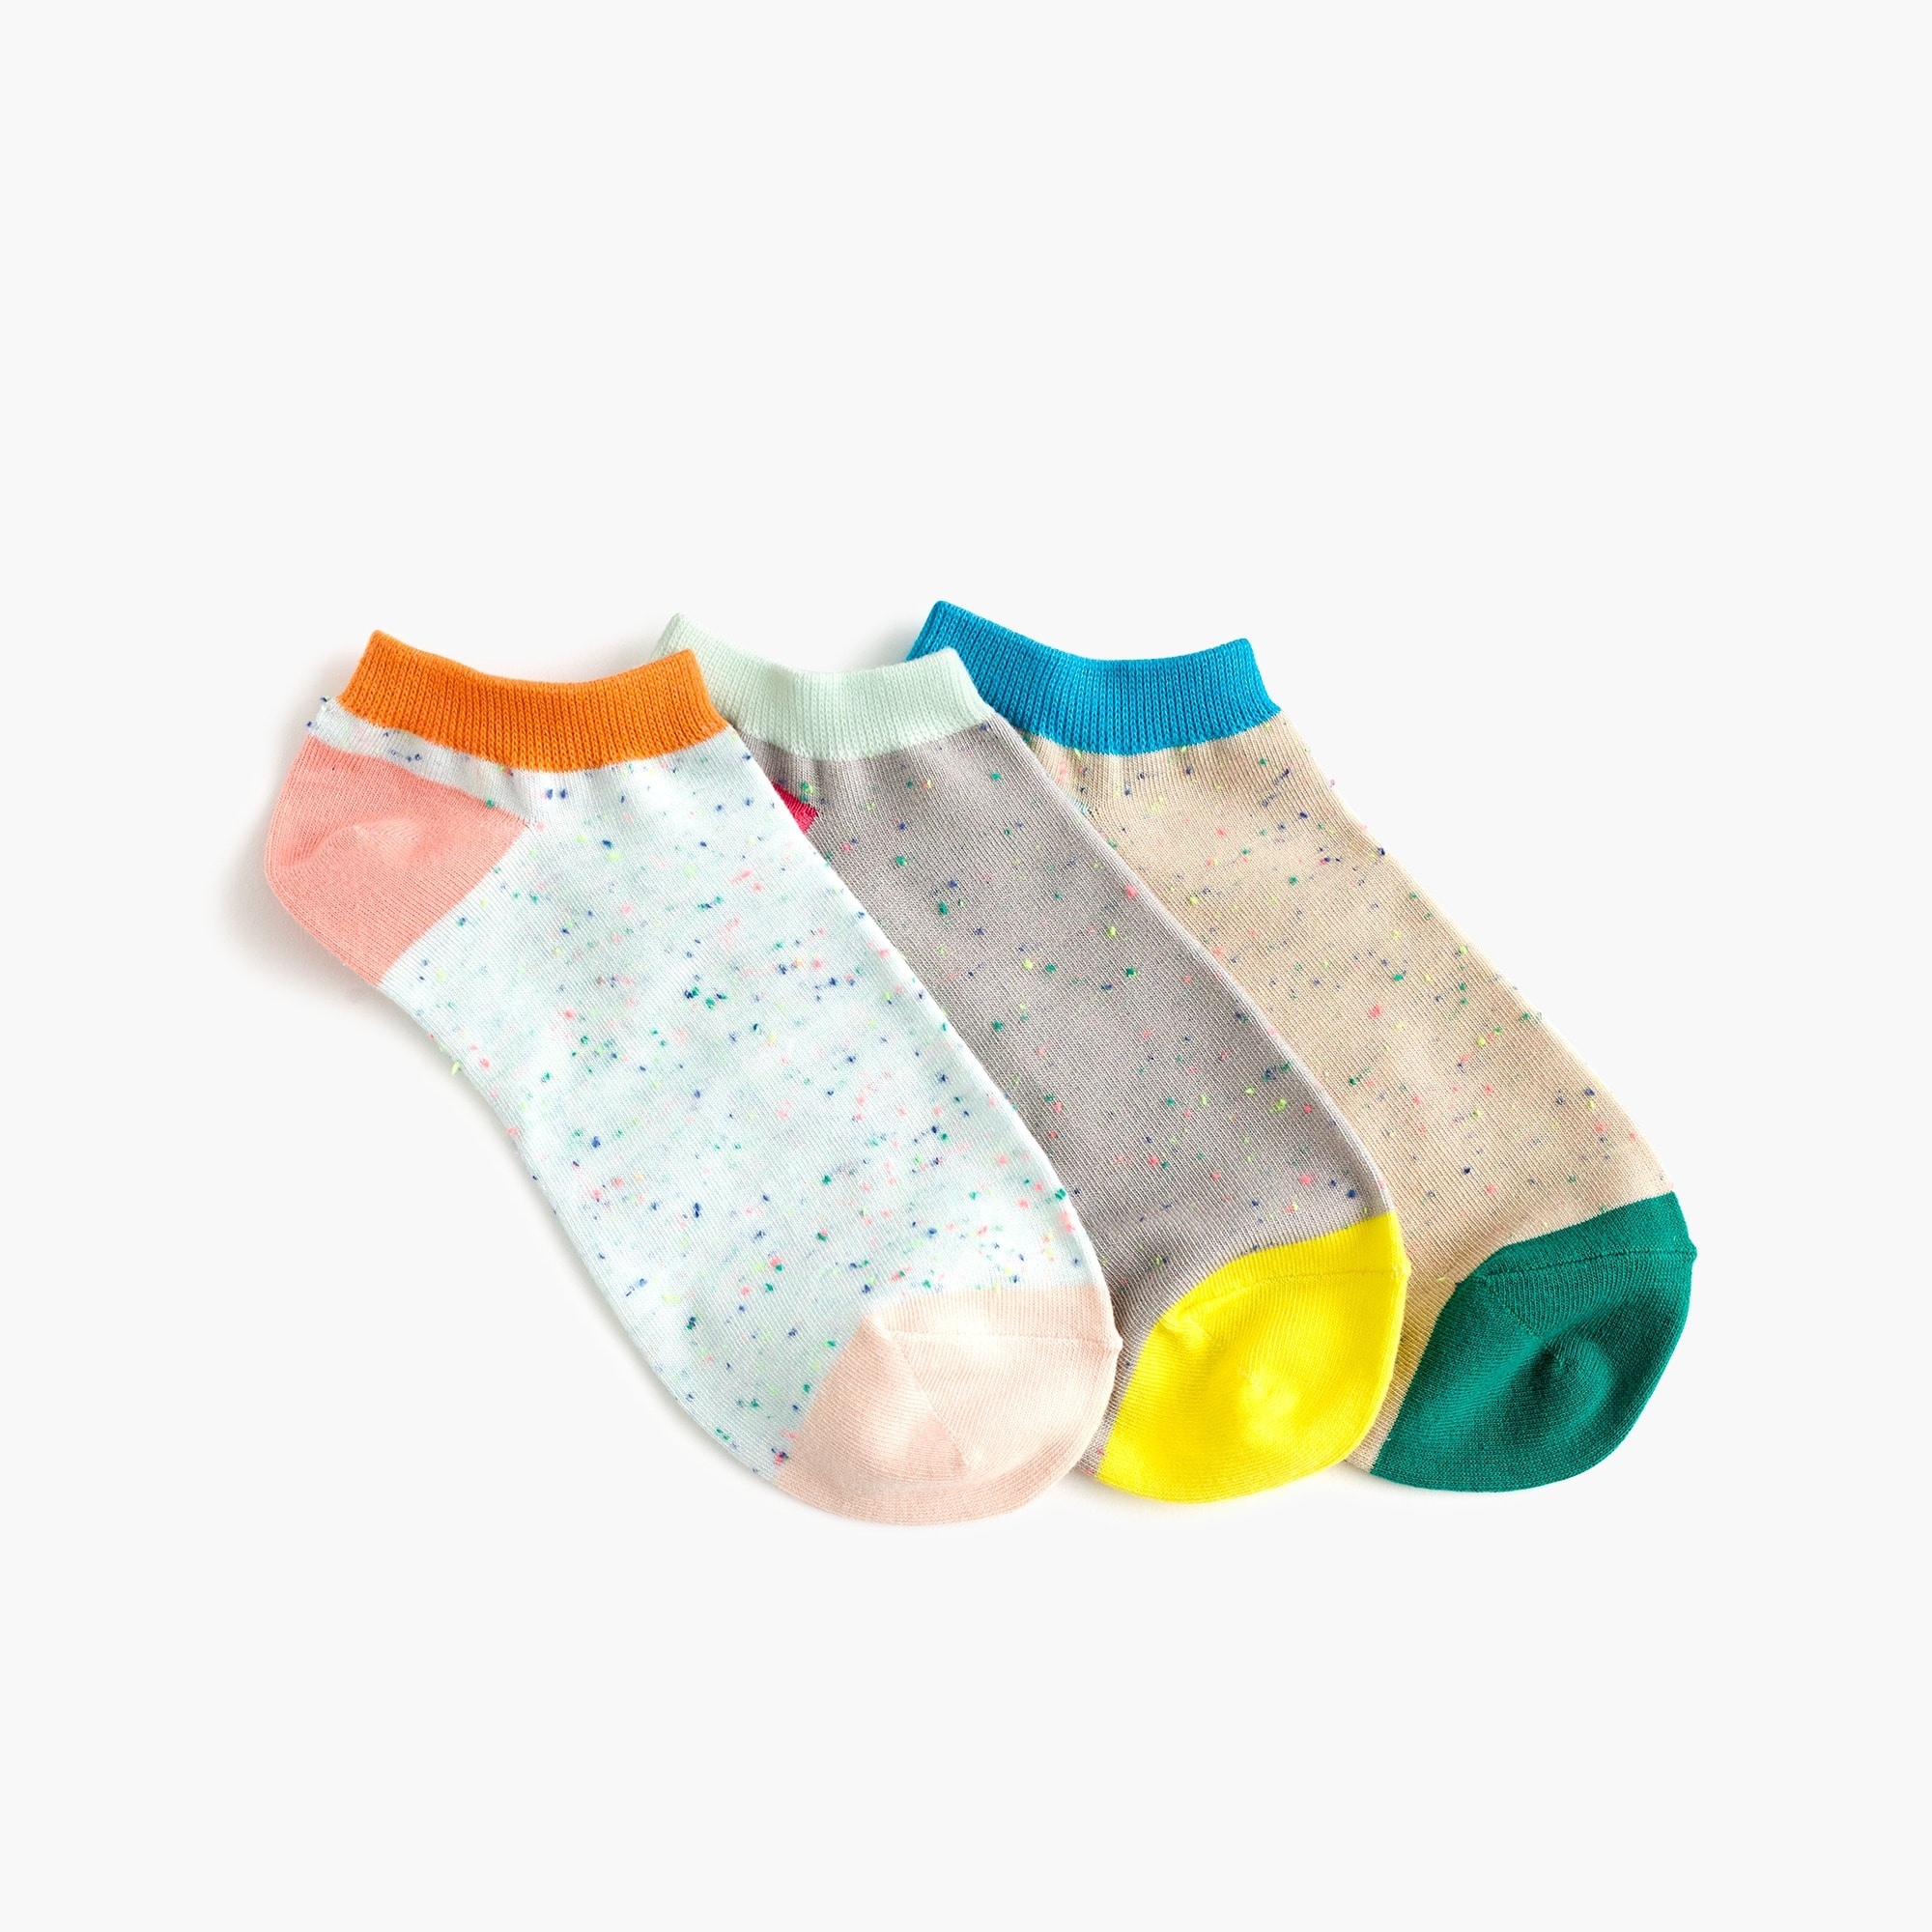 womens Ankle socks three-pack in Donegal colorblock